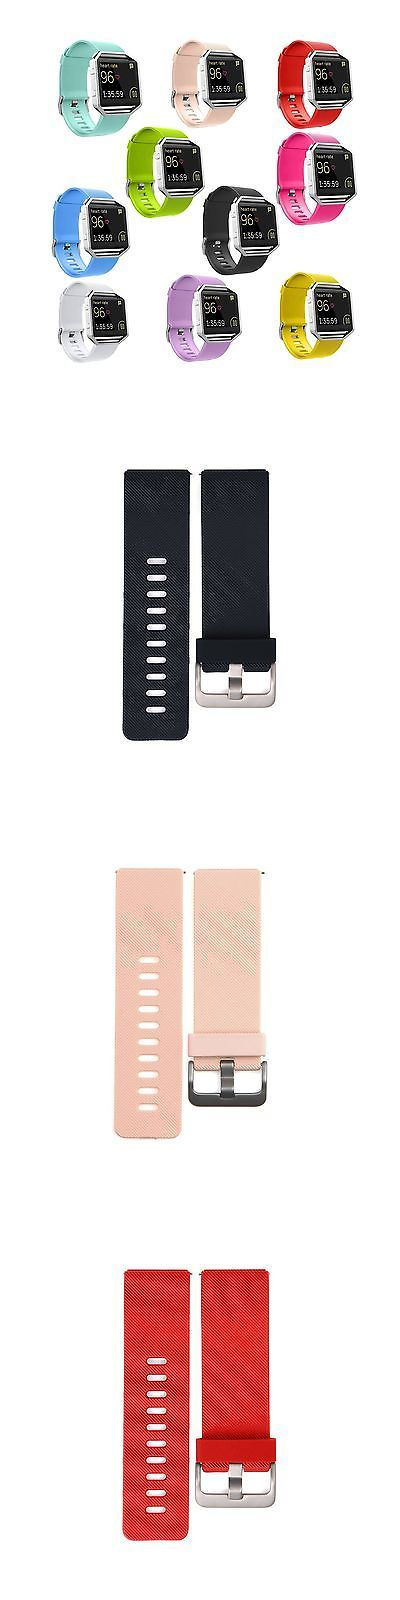 Fit Tech Parts and Accessories 179799: Mega Small Color 10Pk Silicone Wristband Strap Band Accessories For Fitbit Blaze -> BUY IT NOW ONLY: $39.32 on eBay!